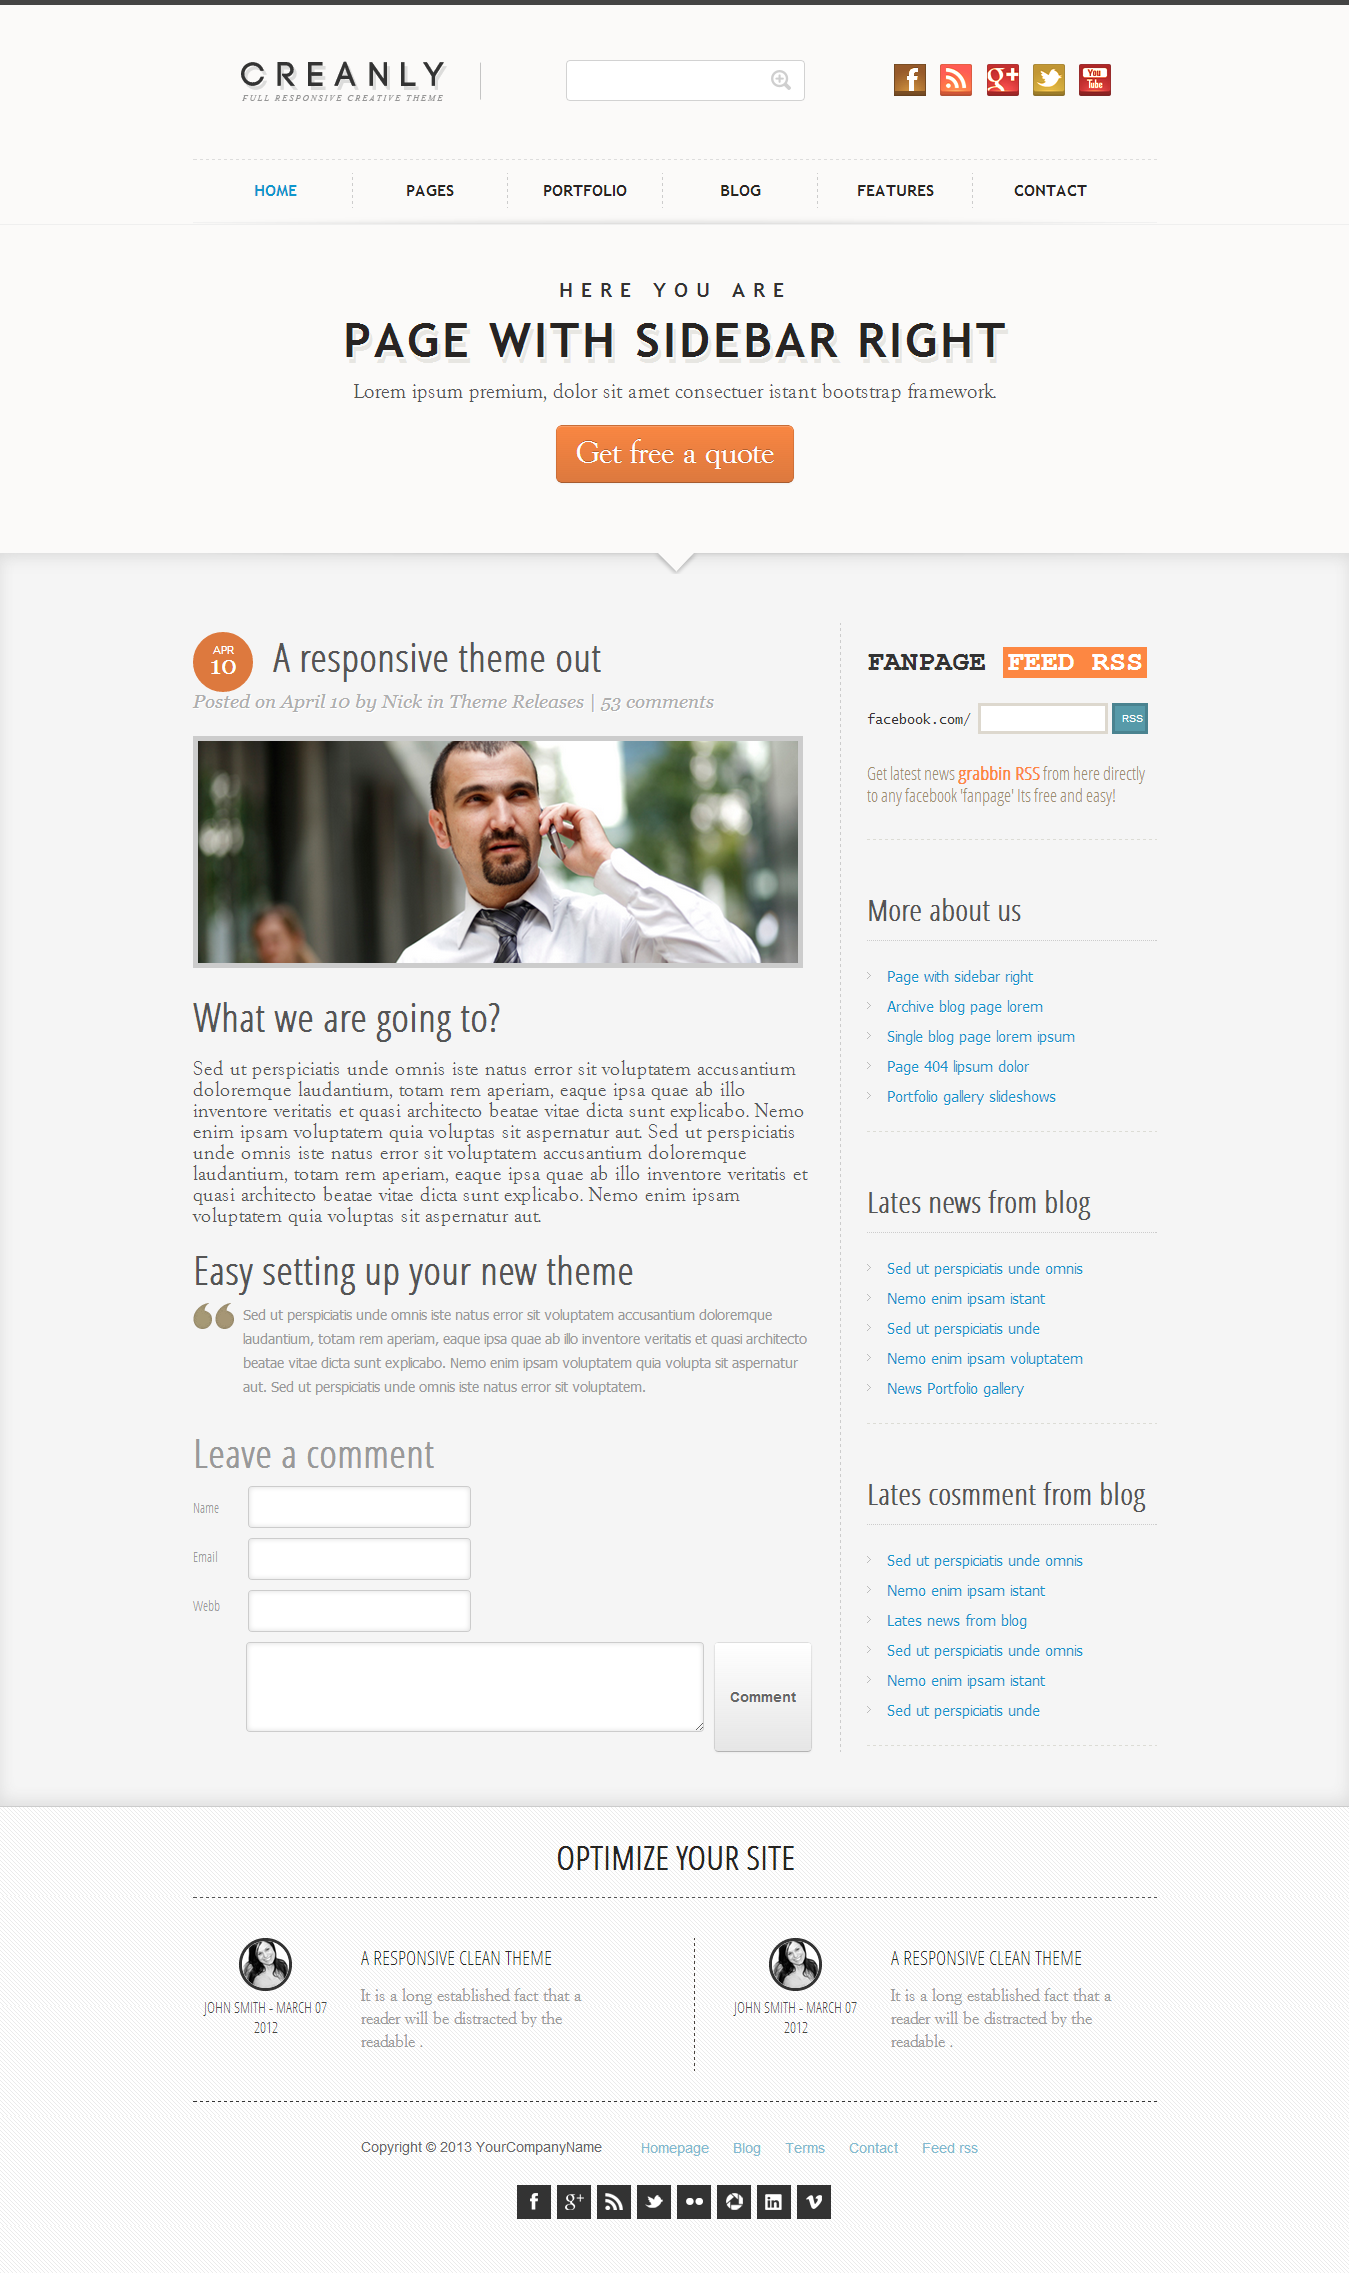 Creanly - Responsive clean theme design - This is the single blog page listing the article with date, resource, comment...